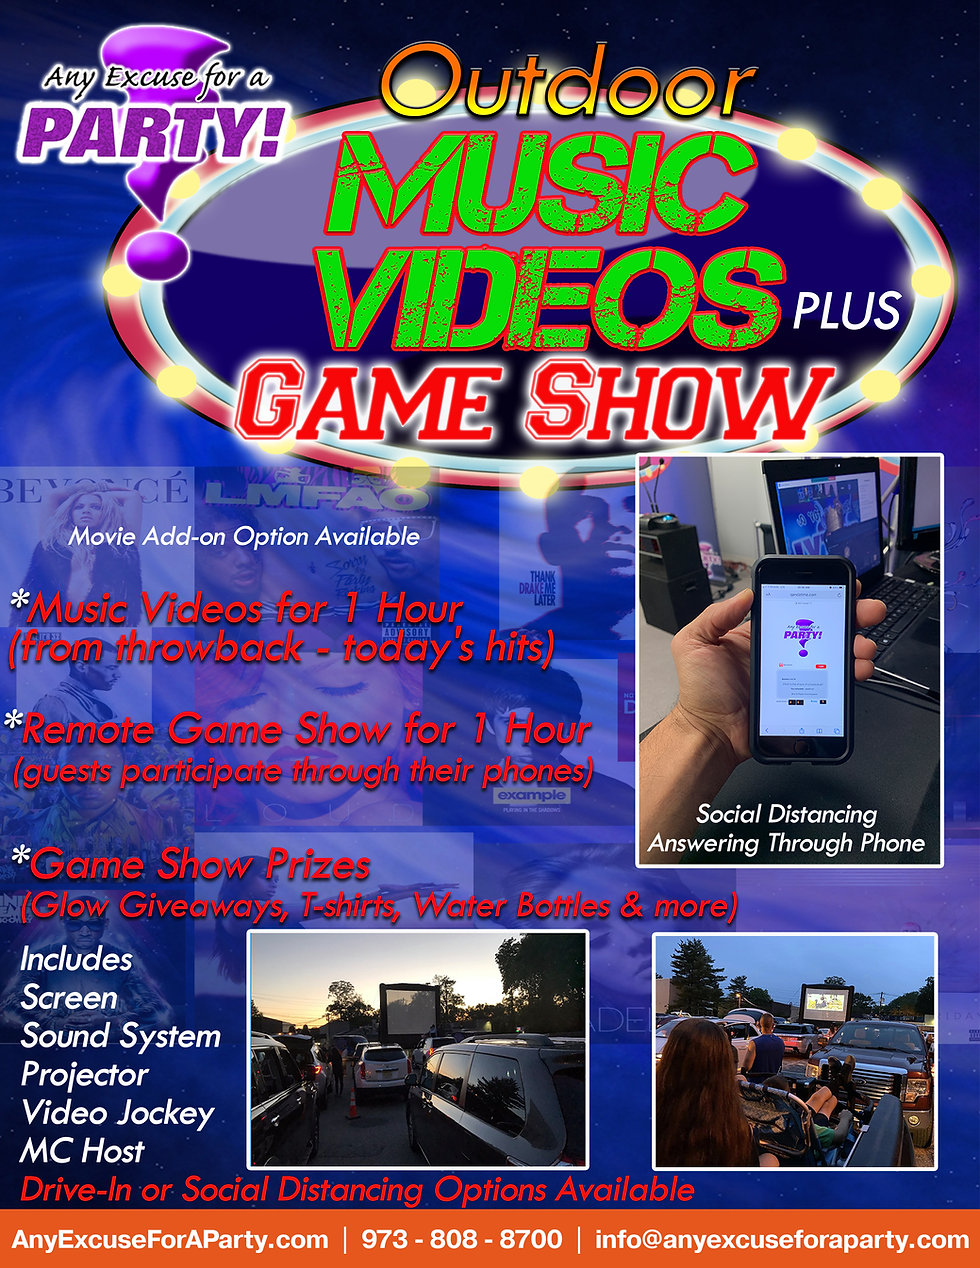 Outdoor Music Videos Plus Game Show wo p